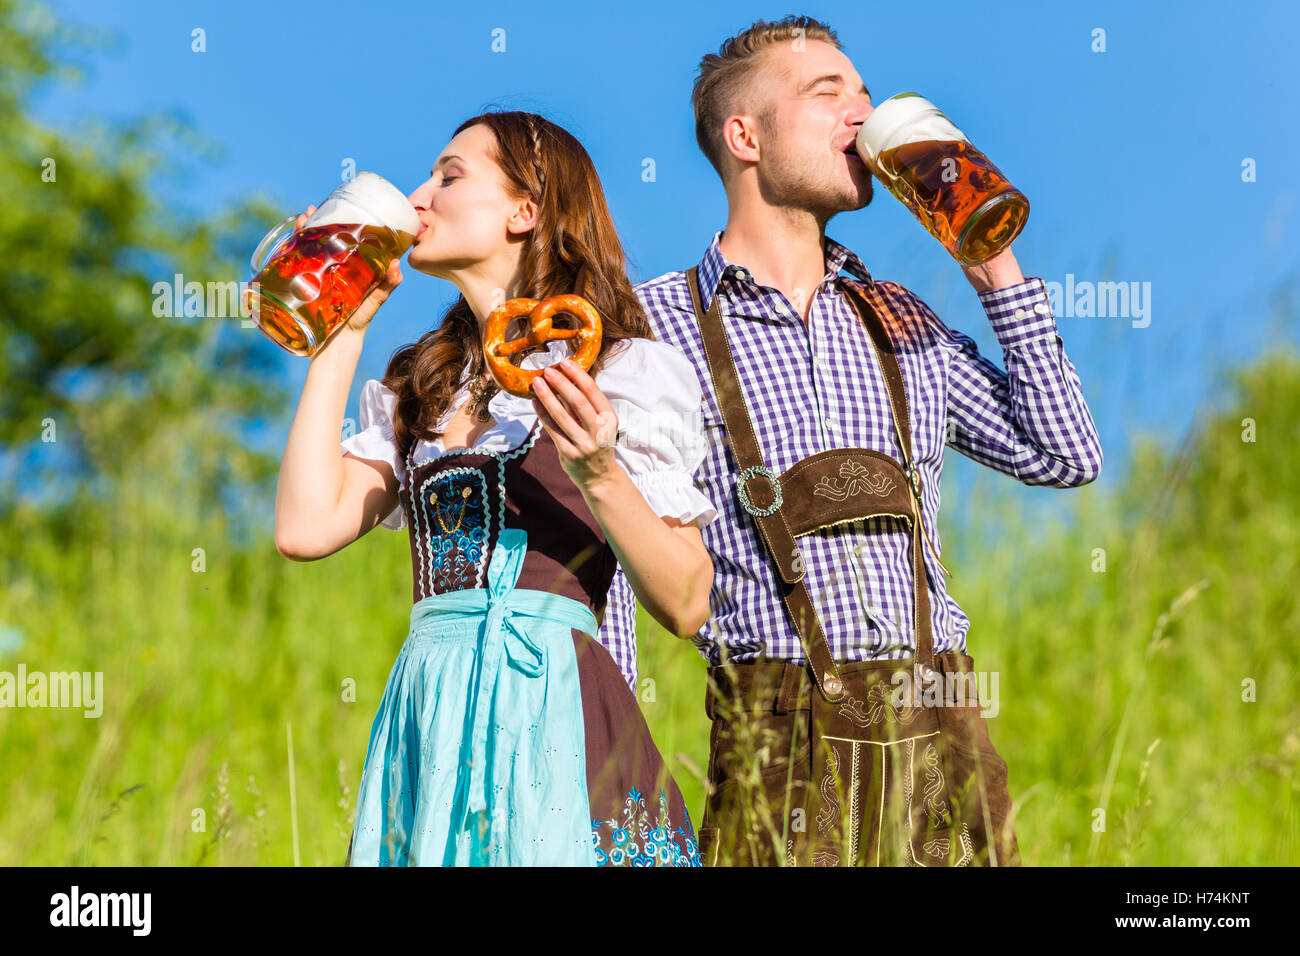 woman friendship beautiful beauteously nice drink drinking bibs spare time free time leisure leisure time park green - Stock Image